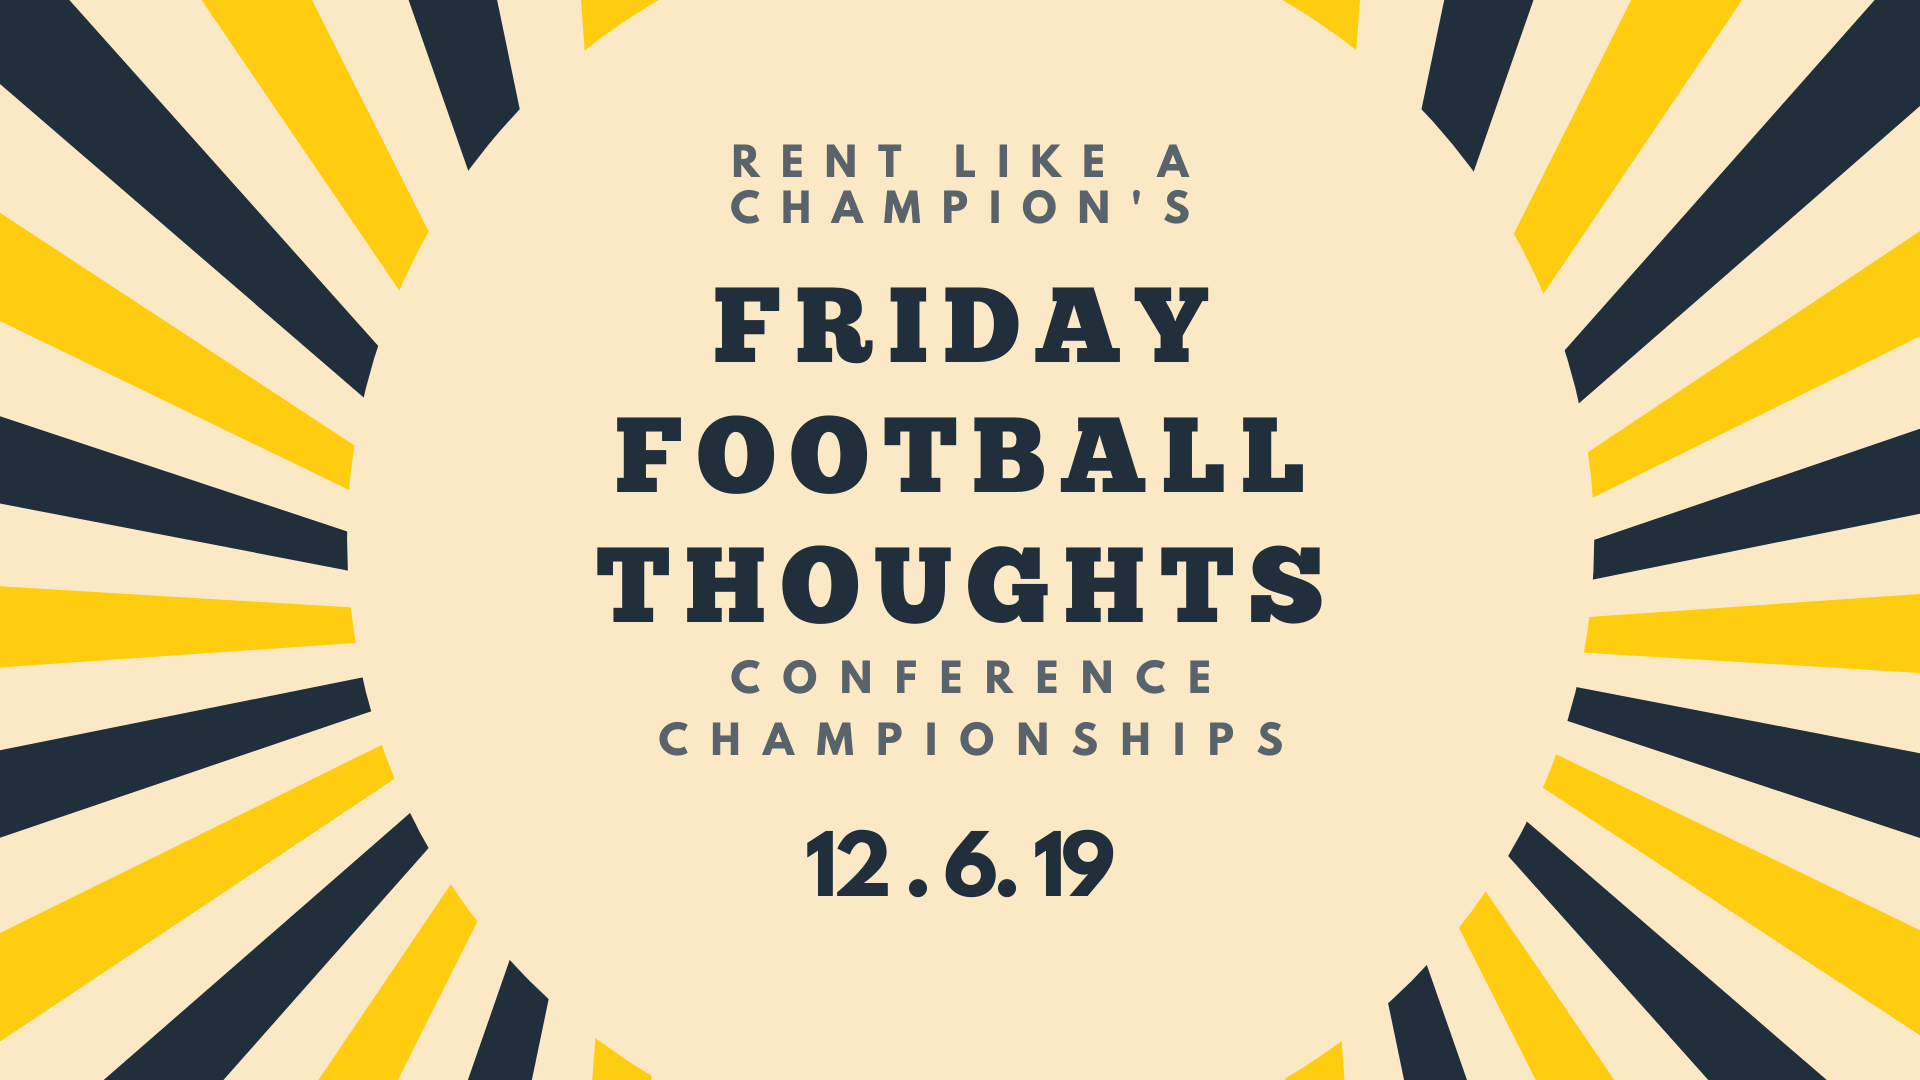 Friday Football Thoughts Template (6)